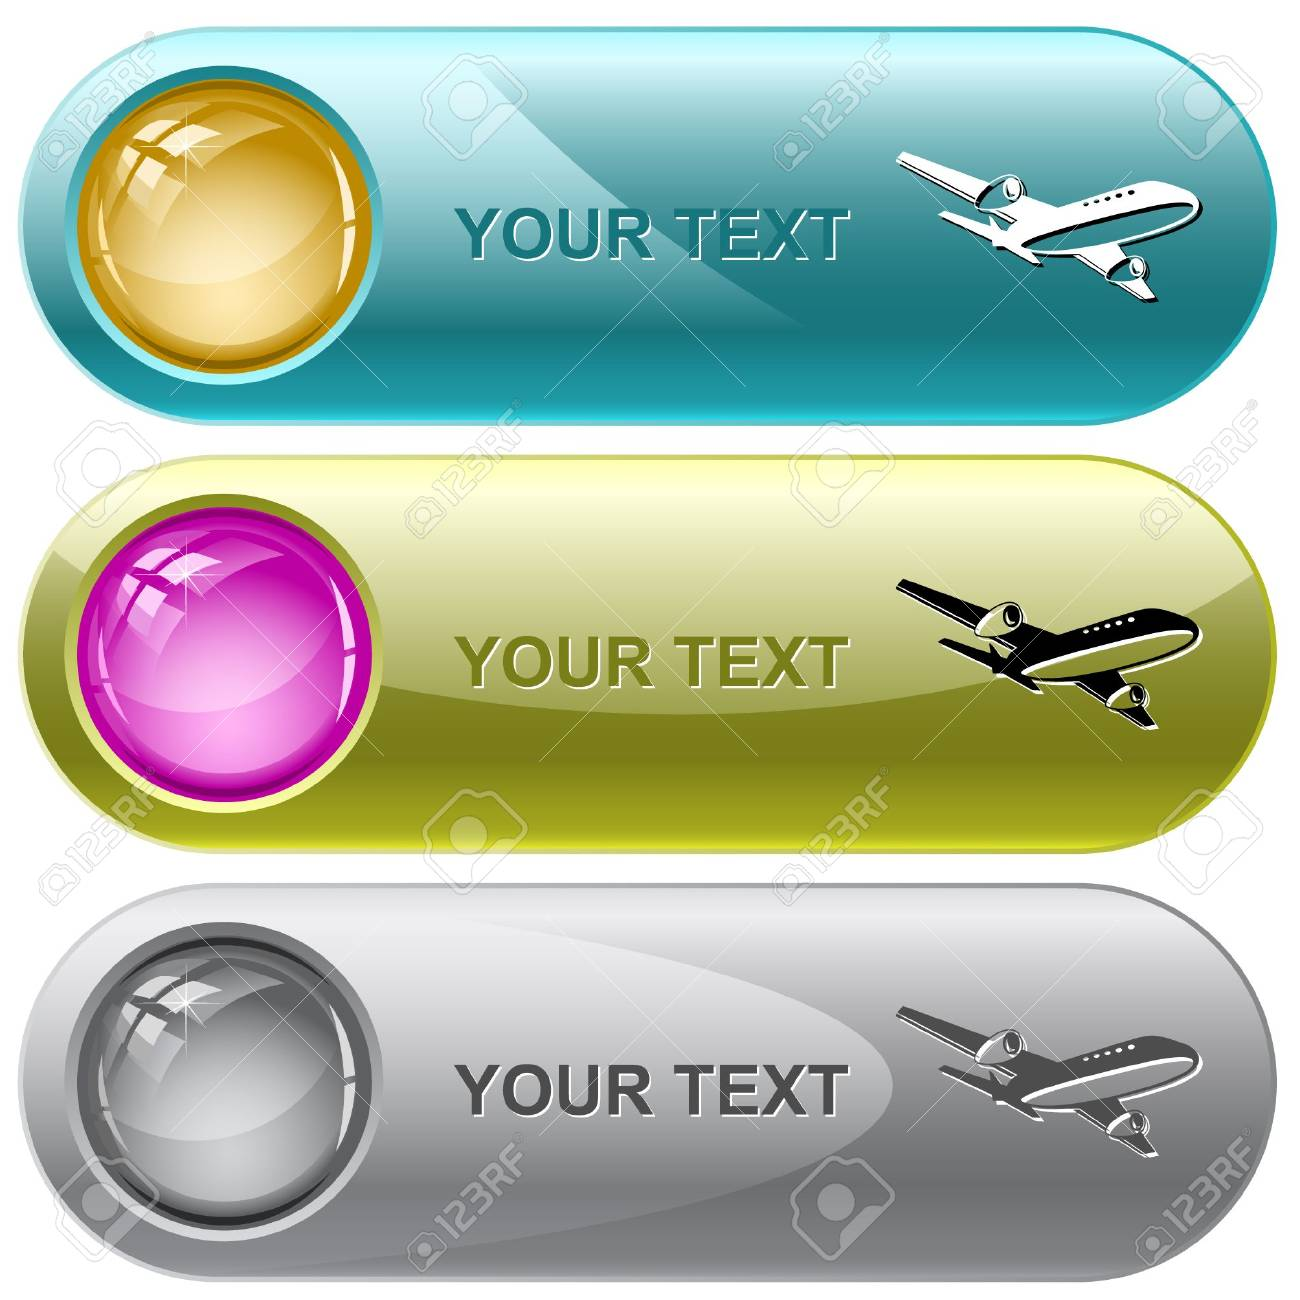 Airliner. internet buttons. Stock Vector - 6776395